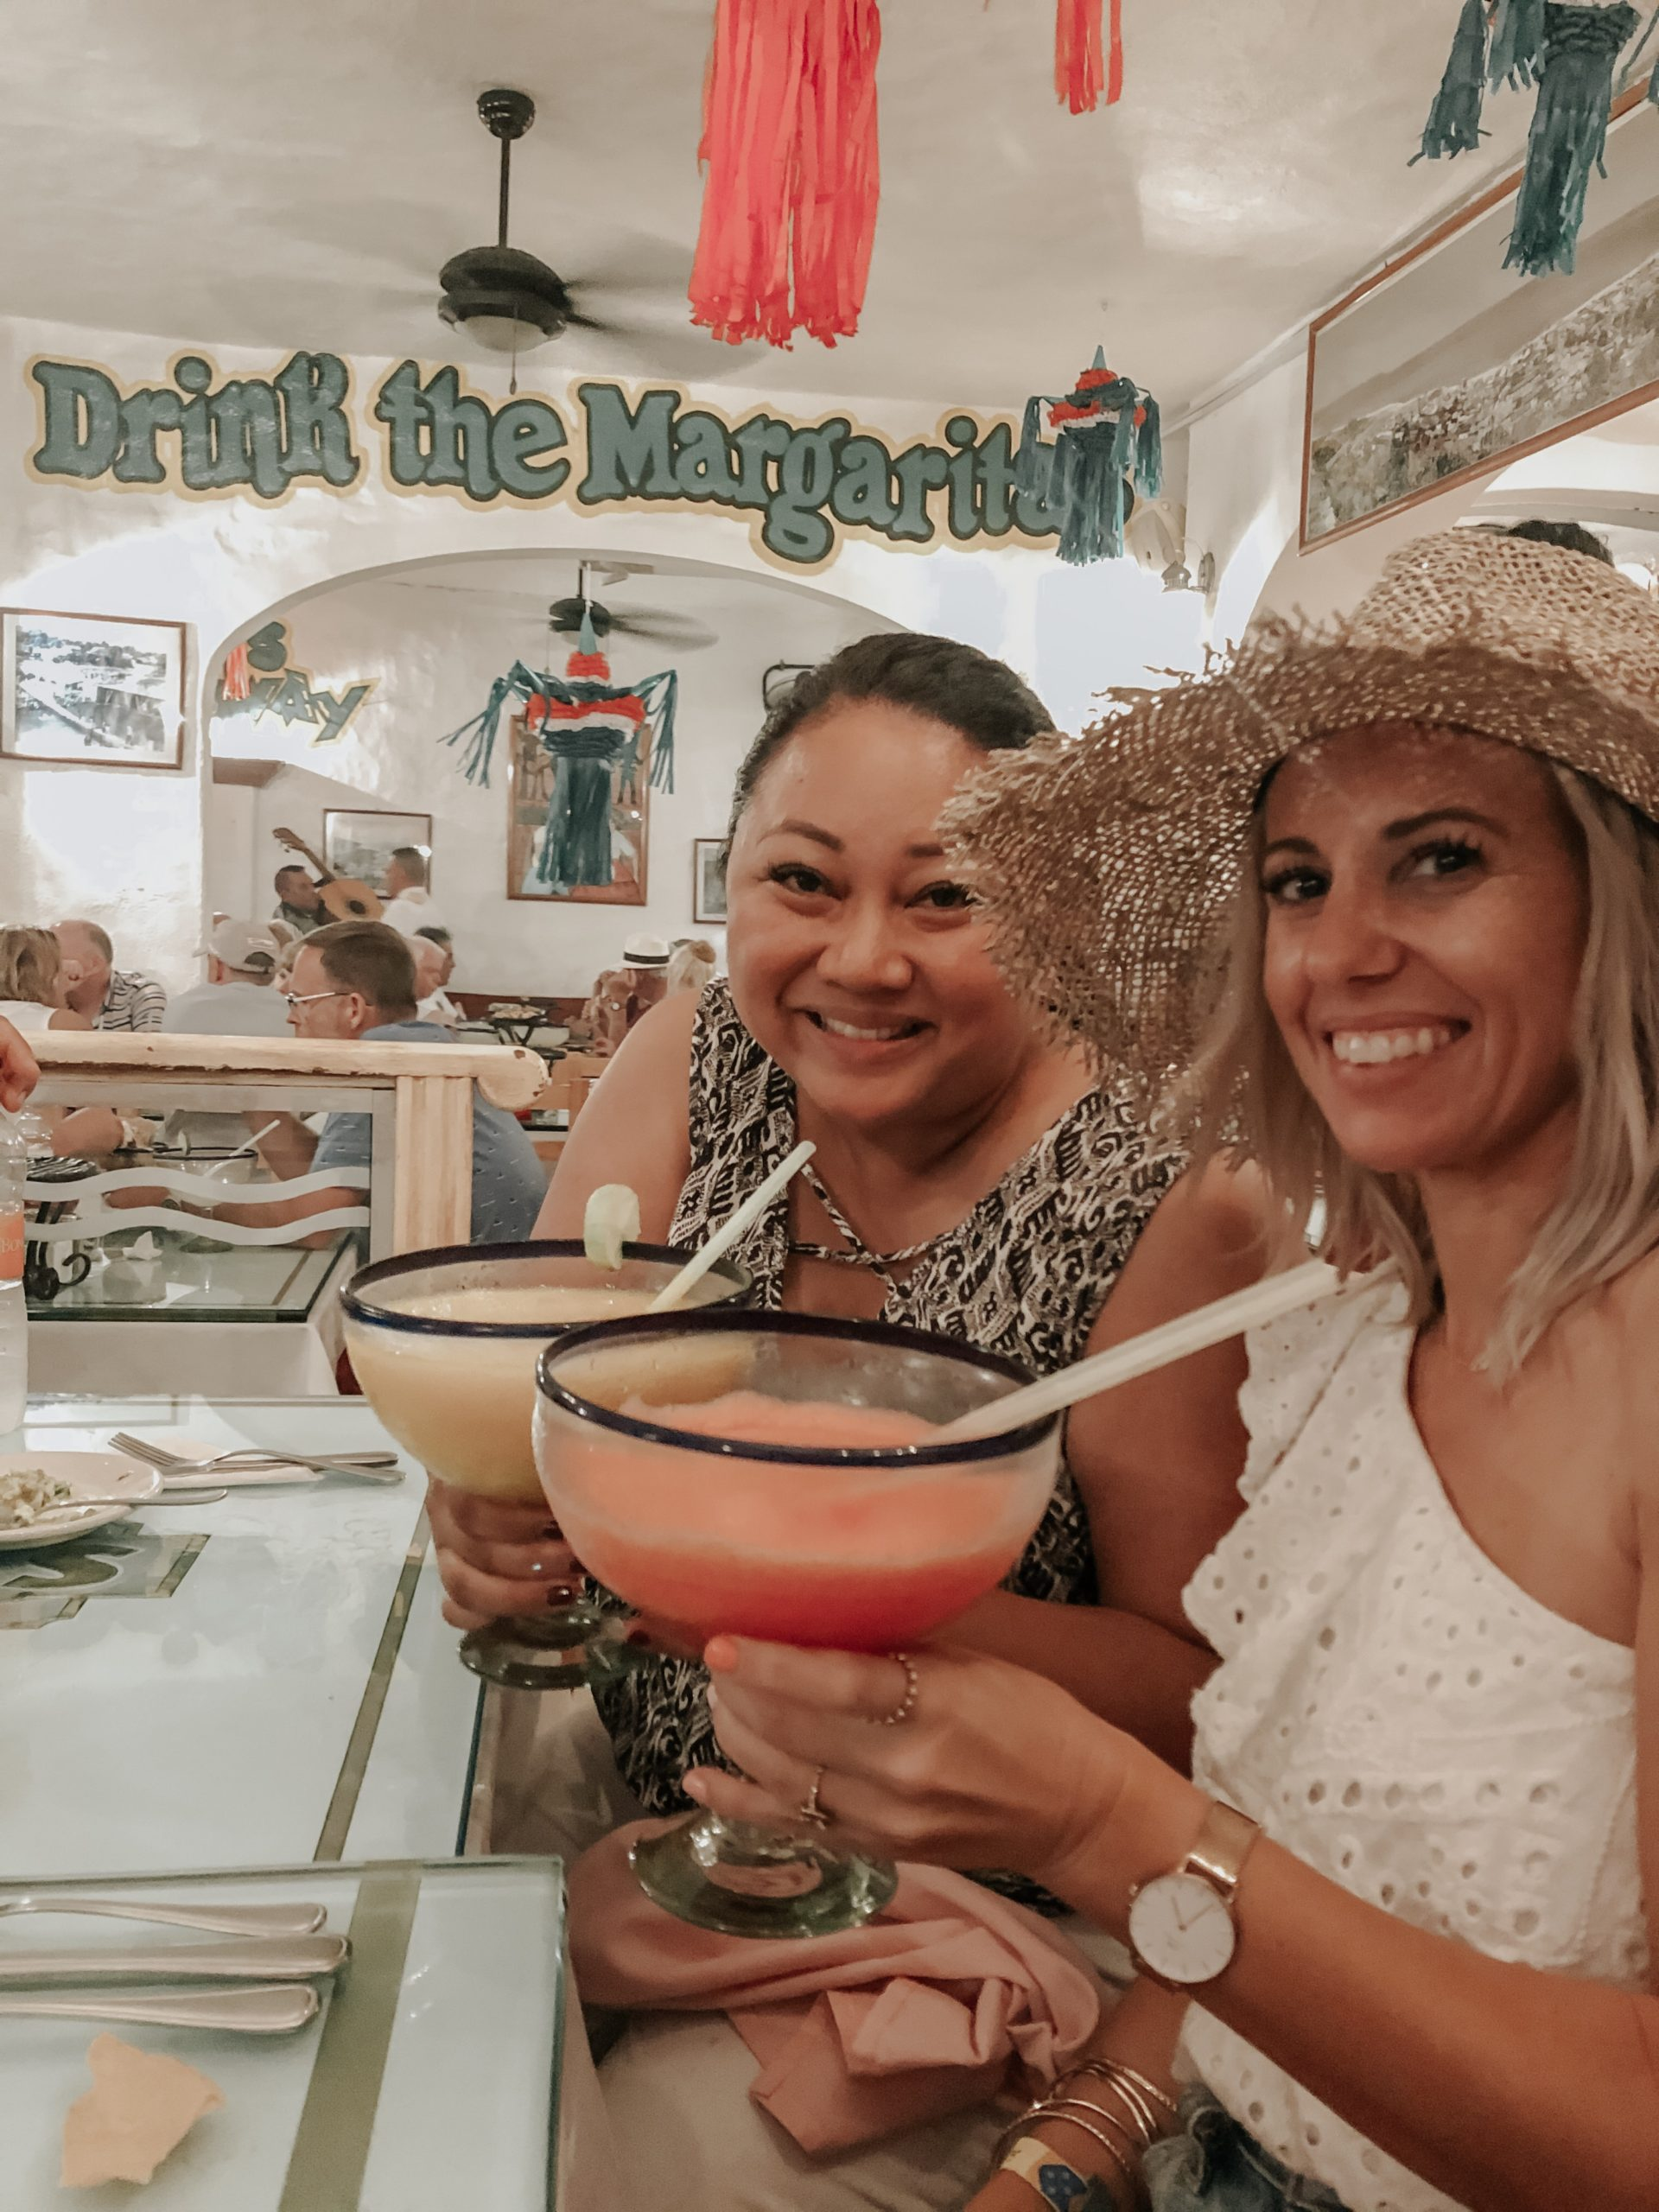 OUR PUERTO VALLARTA ADVENTURES- Jaclyn De Leon Style + Where we stayed, where we went, where we ate and everything we did on our Mexican family vacation